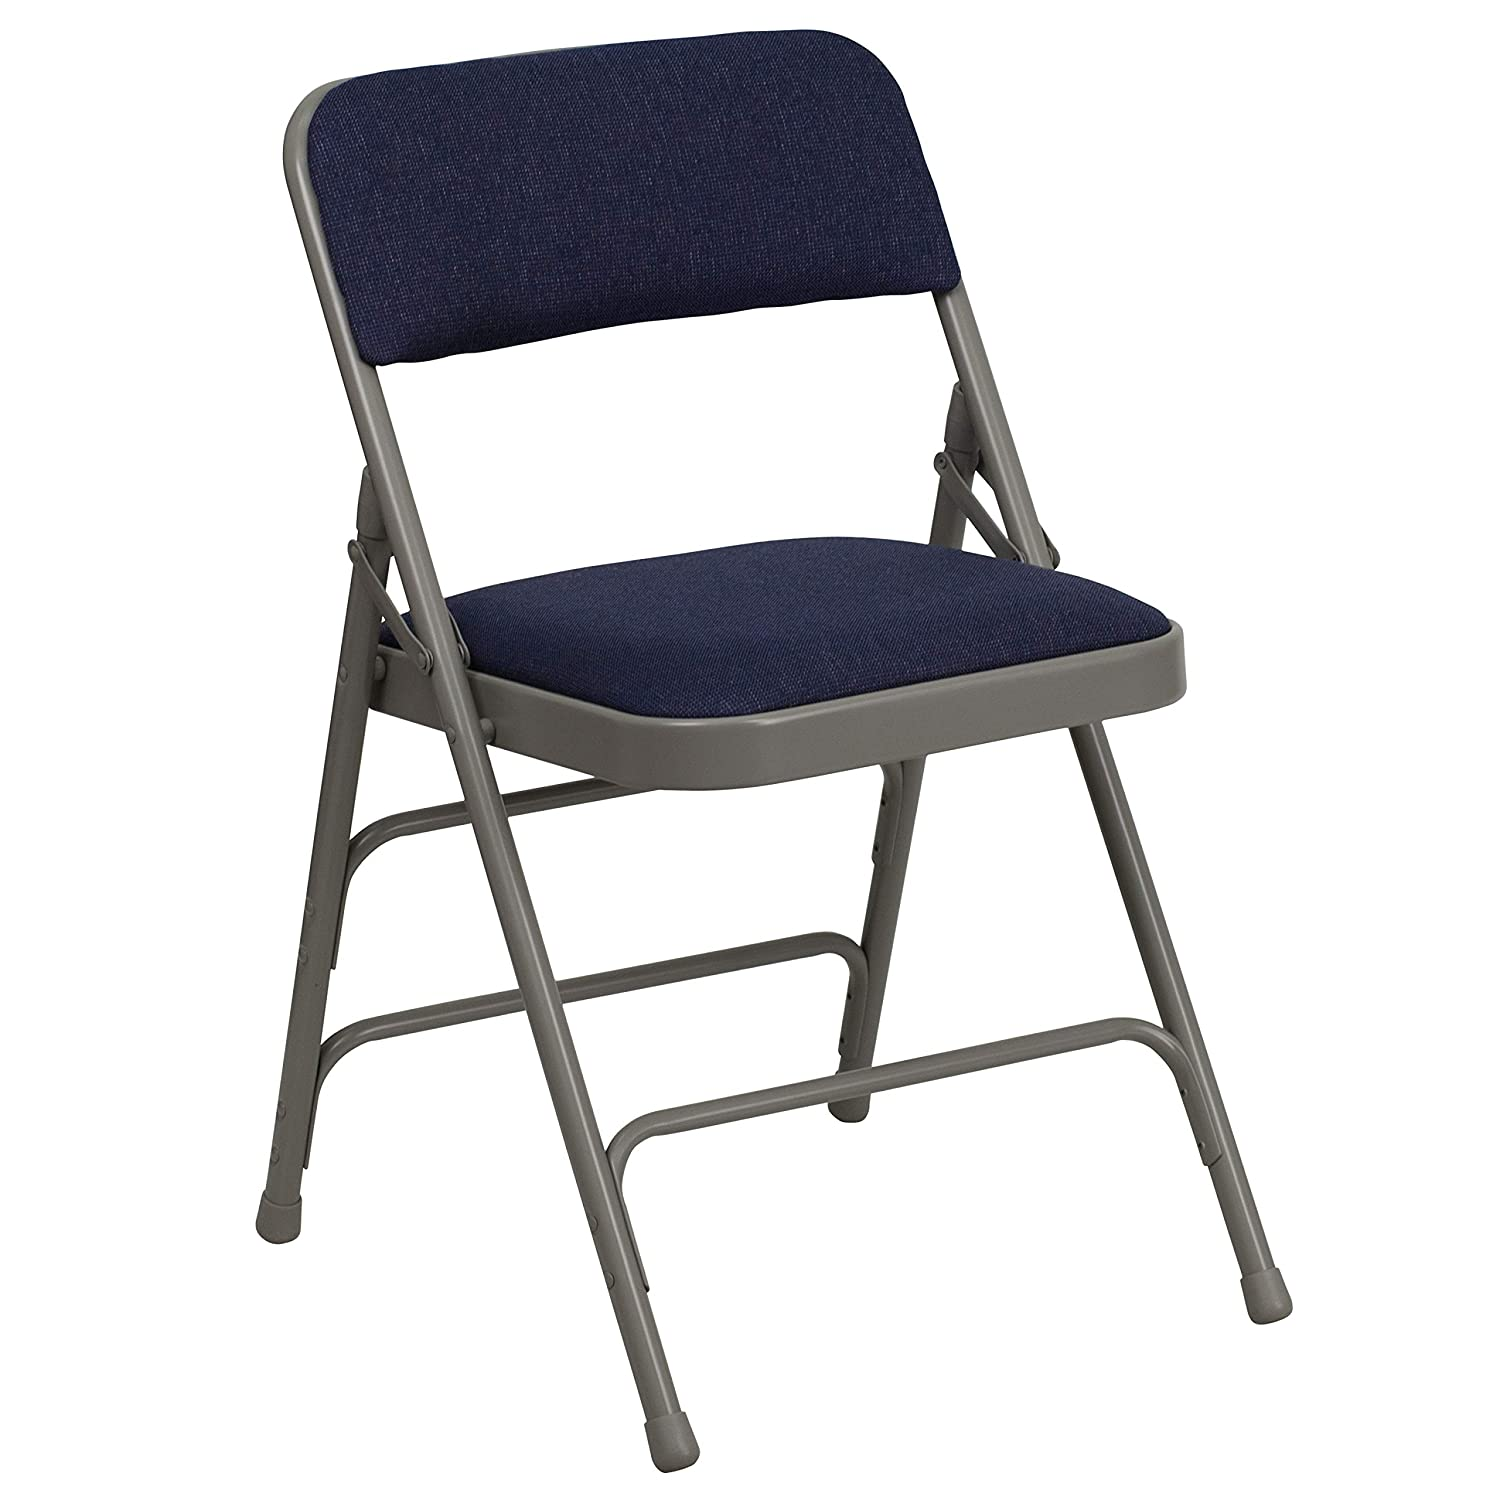 Flash Furniture HERCULES Series Curved Triple Braced Double Hinged Navy Fabric Metal Folding Chair